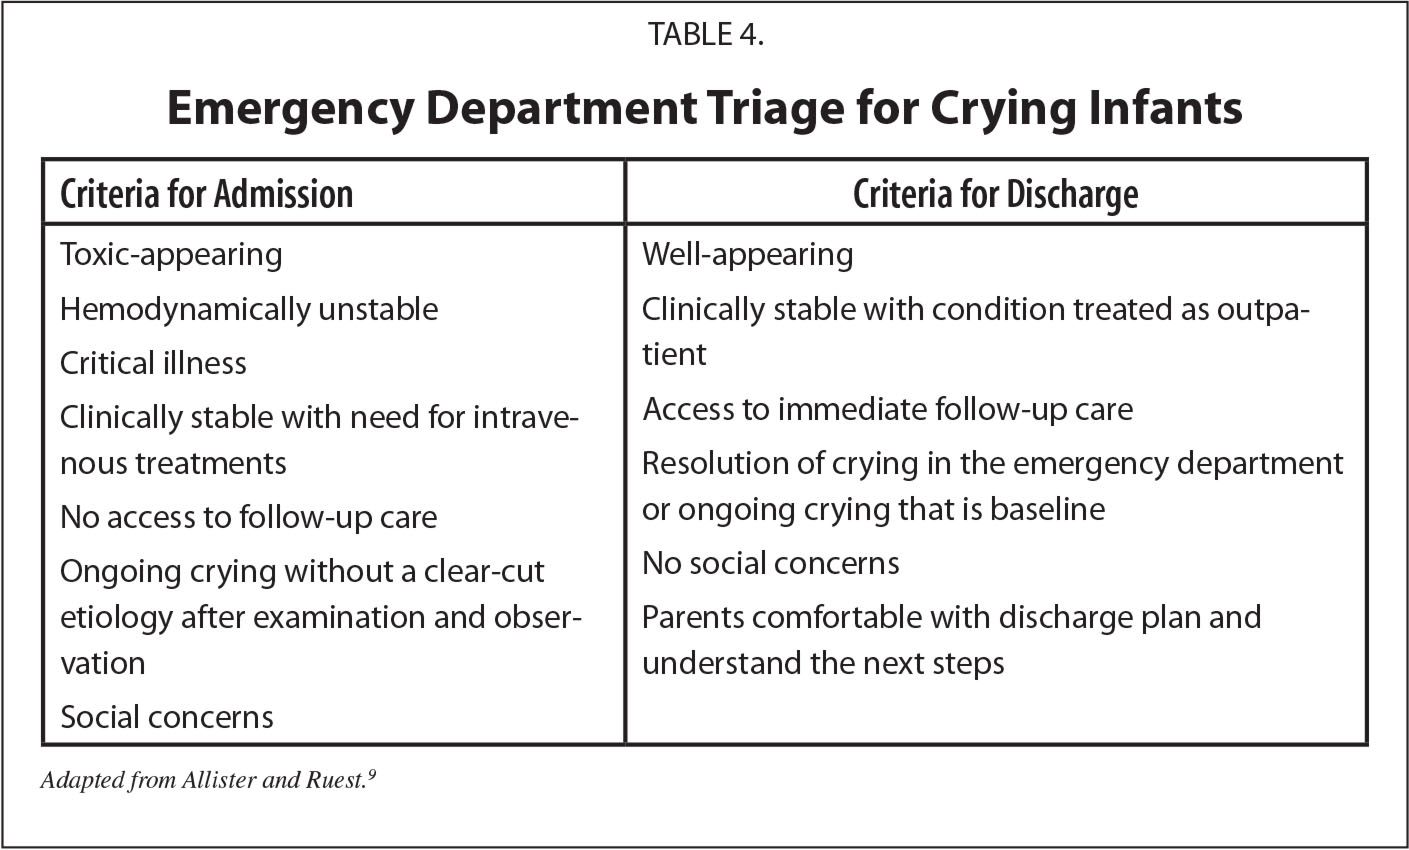 Emergency Department Triage for Crying Infants